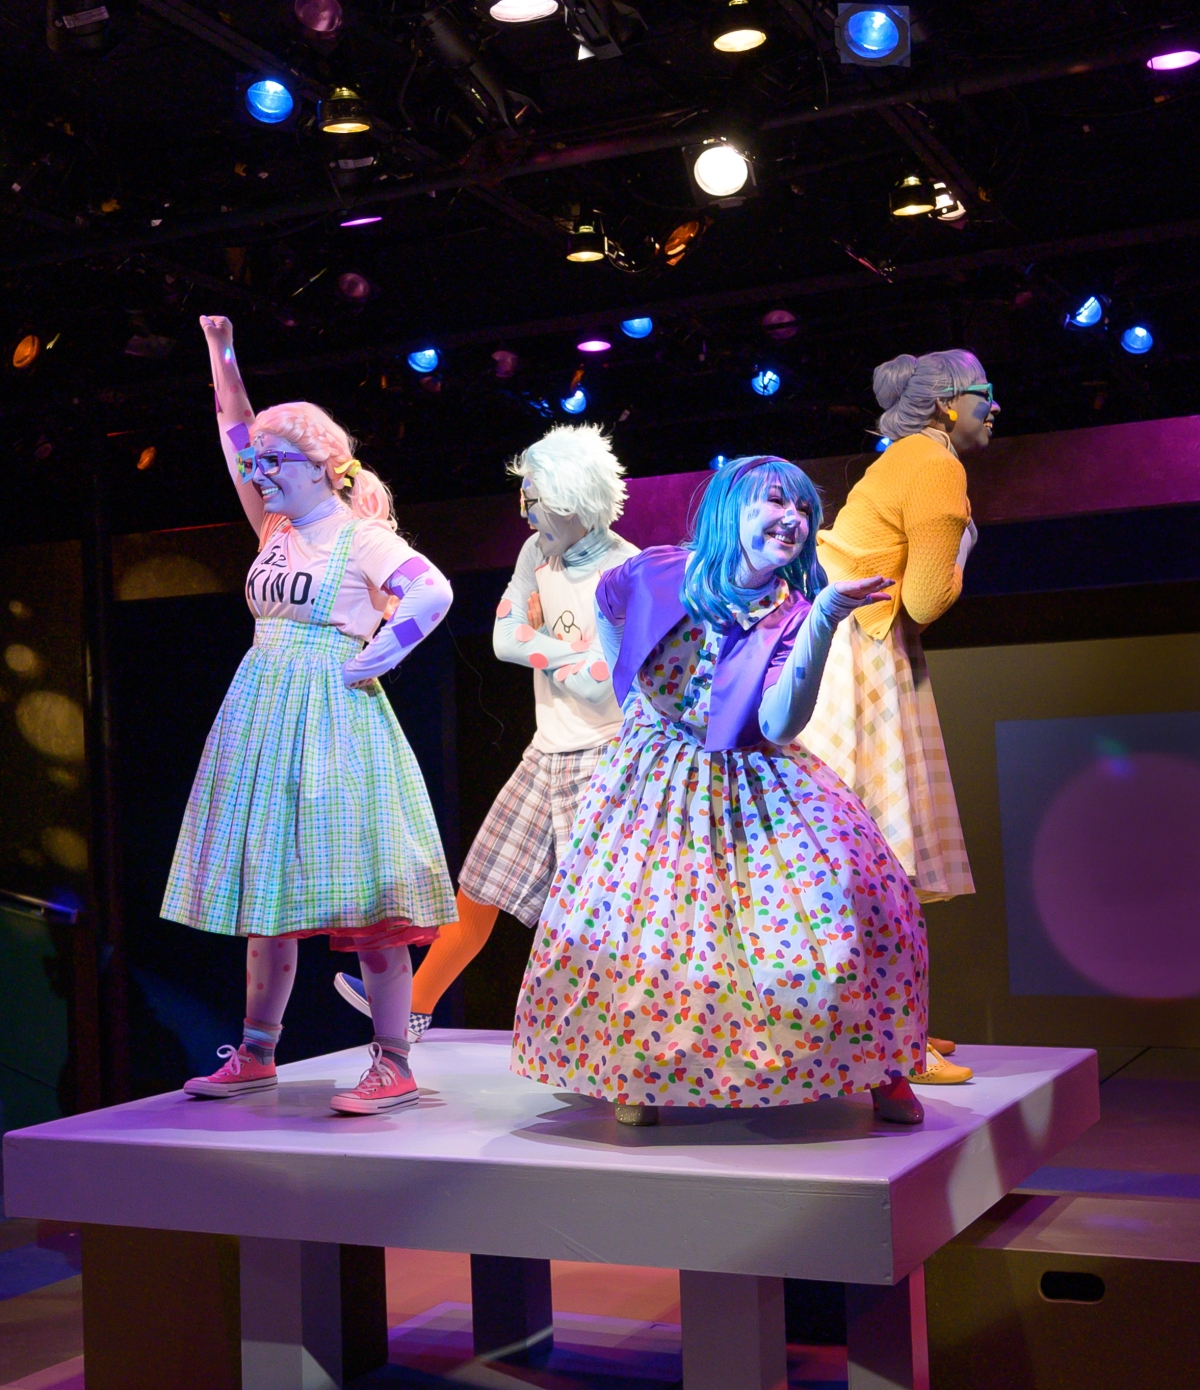 POLKA DOTS: A Musical About Segregation